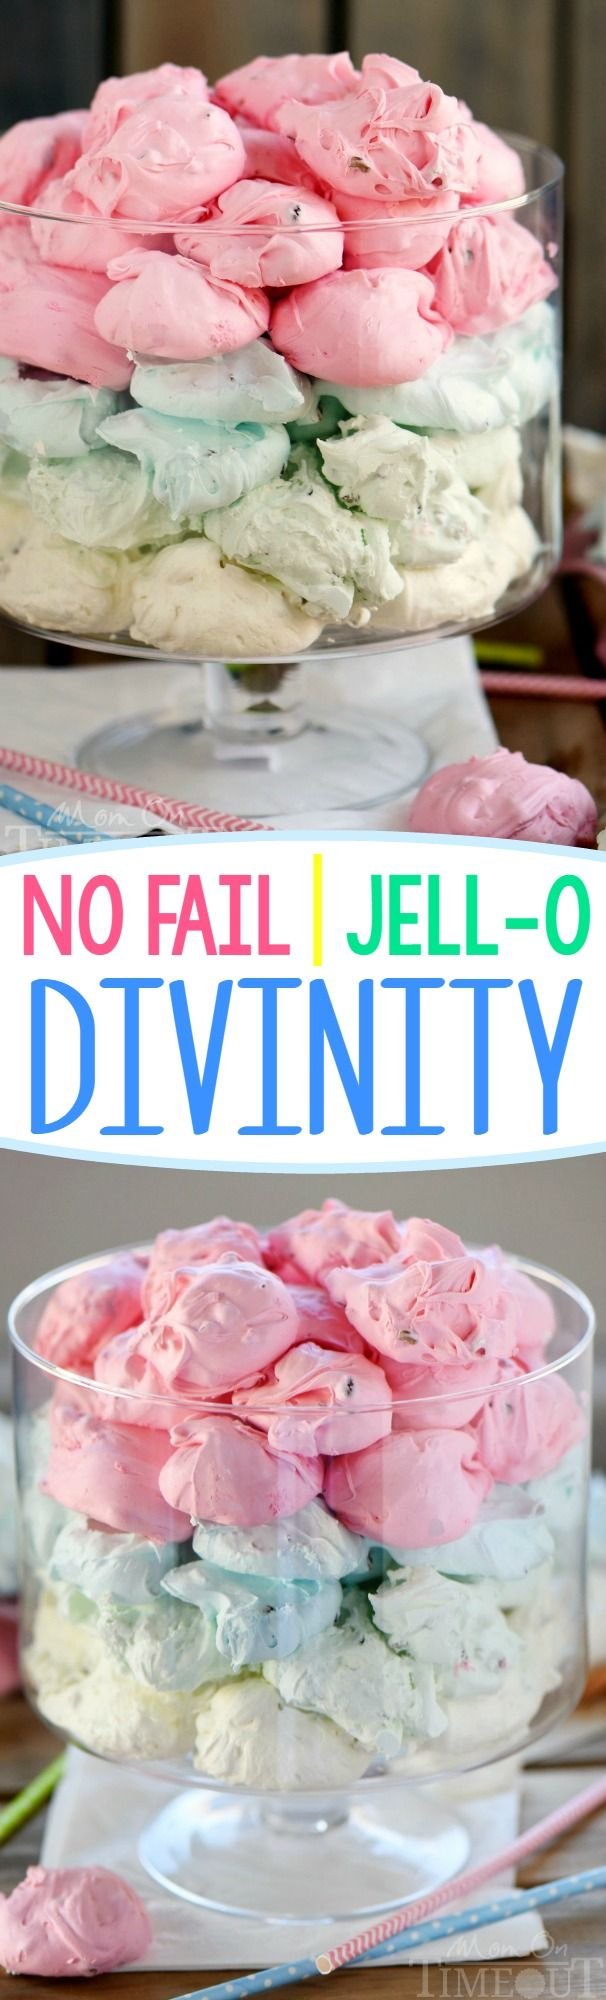 This easy, No Fail Jell-O Divinity recipe is sure to delight the child in everyone! Pretty pastel candies are the essential treat for your Easter holiday! Lovely for baby showers too! | Mom On Timeout: